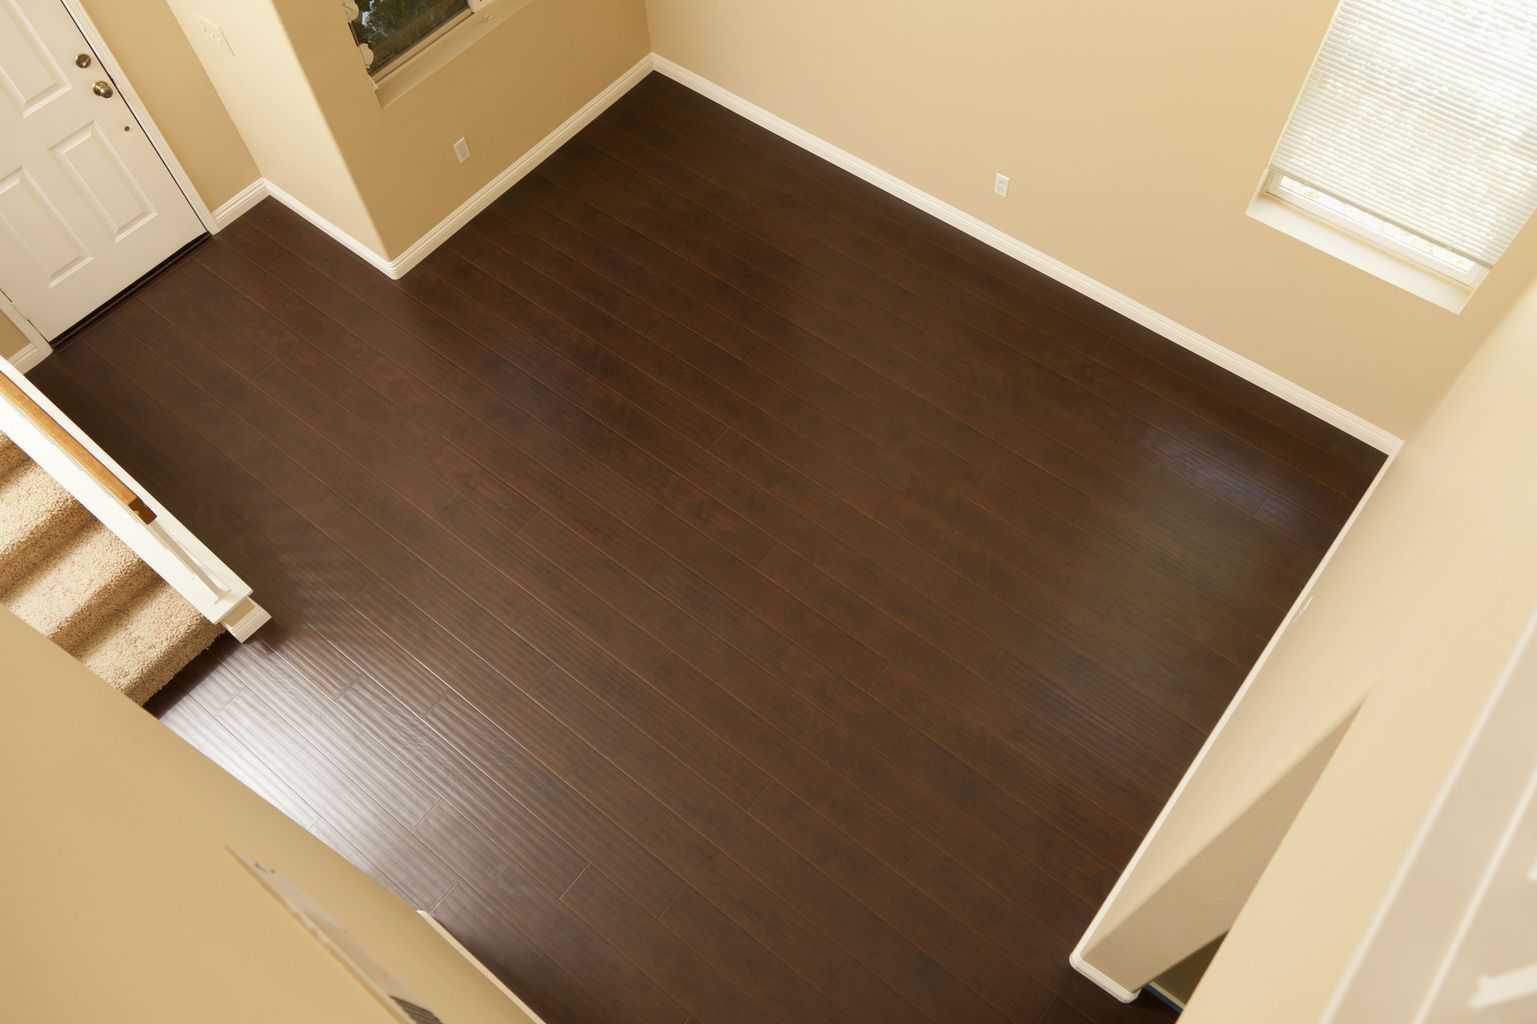 Fortunately, There Is A Way To Install Hardwood Floors Over Concrete Floors,  Making Your Problem Virtually Obsolete Without Clearing Out Your Bank  Account.